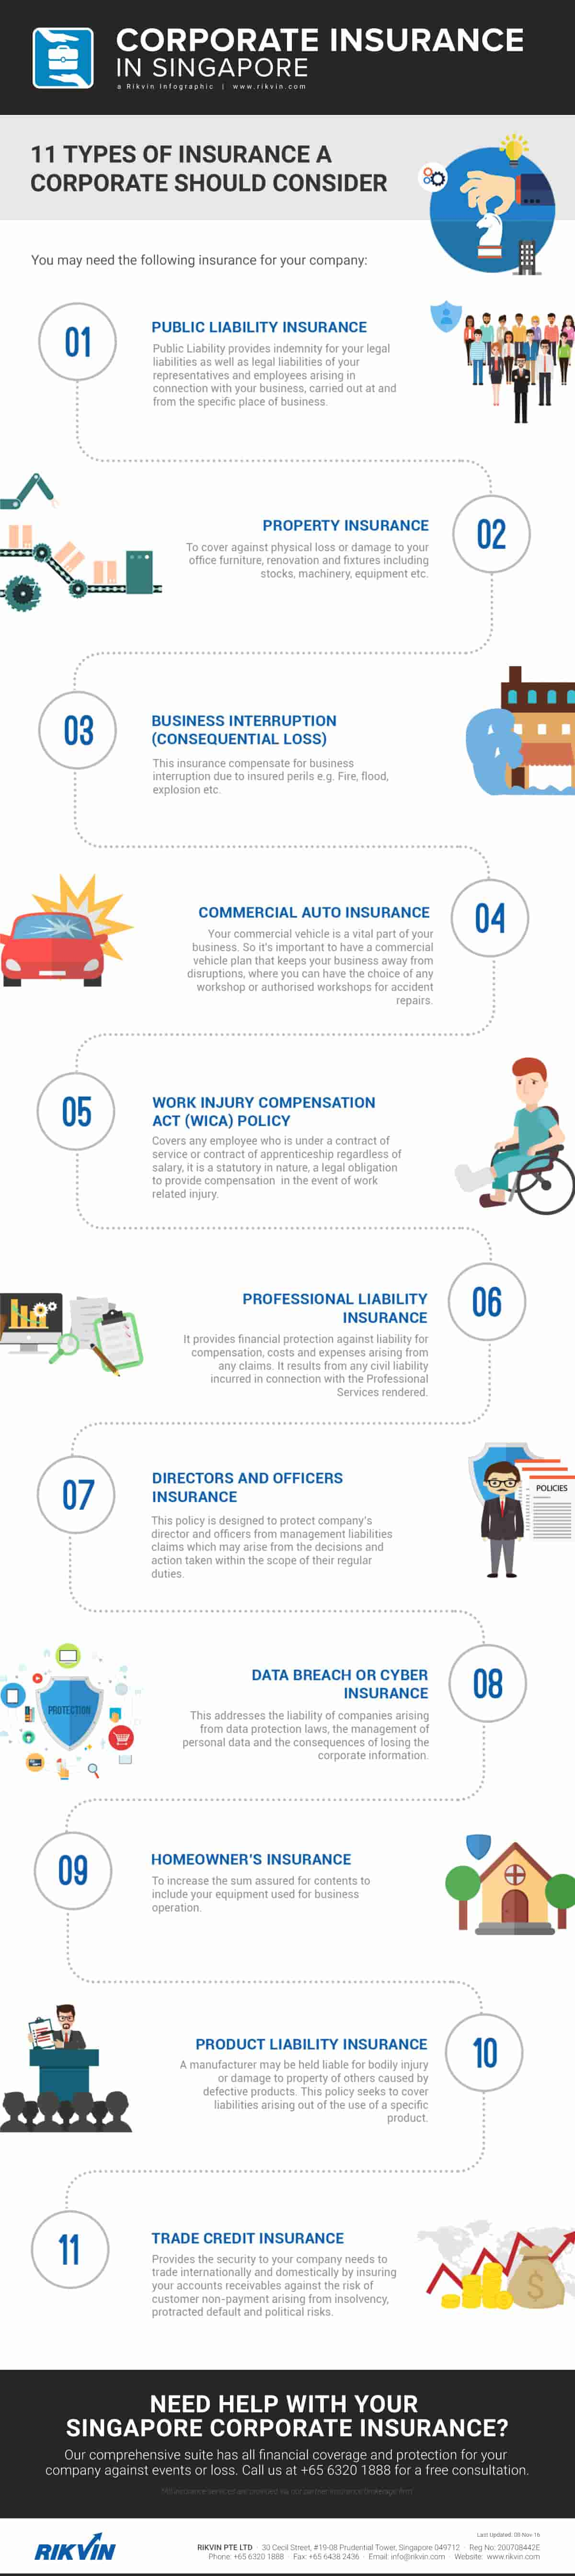 11-types-of-singapore-corporate-insurance-a-corporate-should-consider_rikvin-infographic 11 Types of Singapore Corporate Insurance a Corporate Should Consider